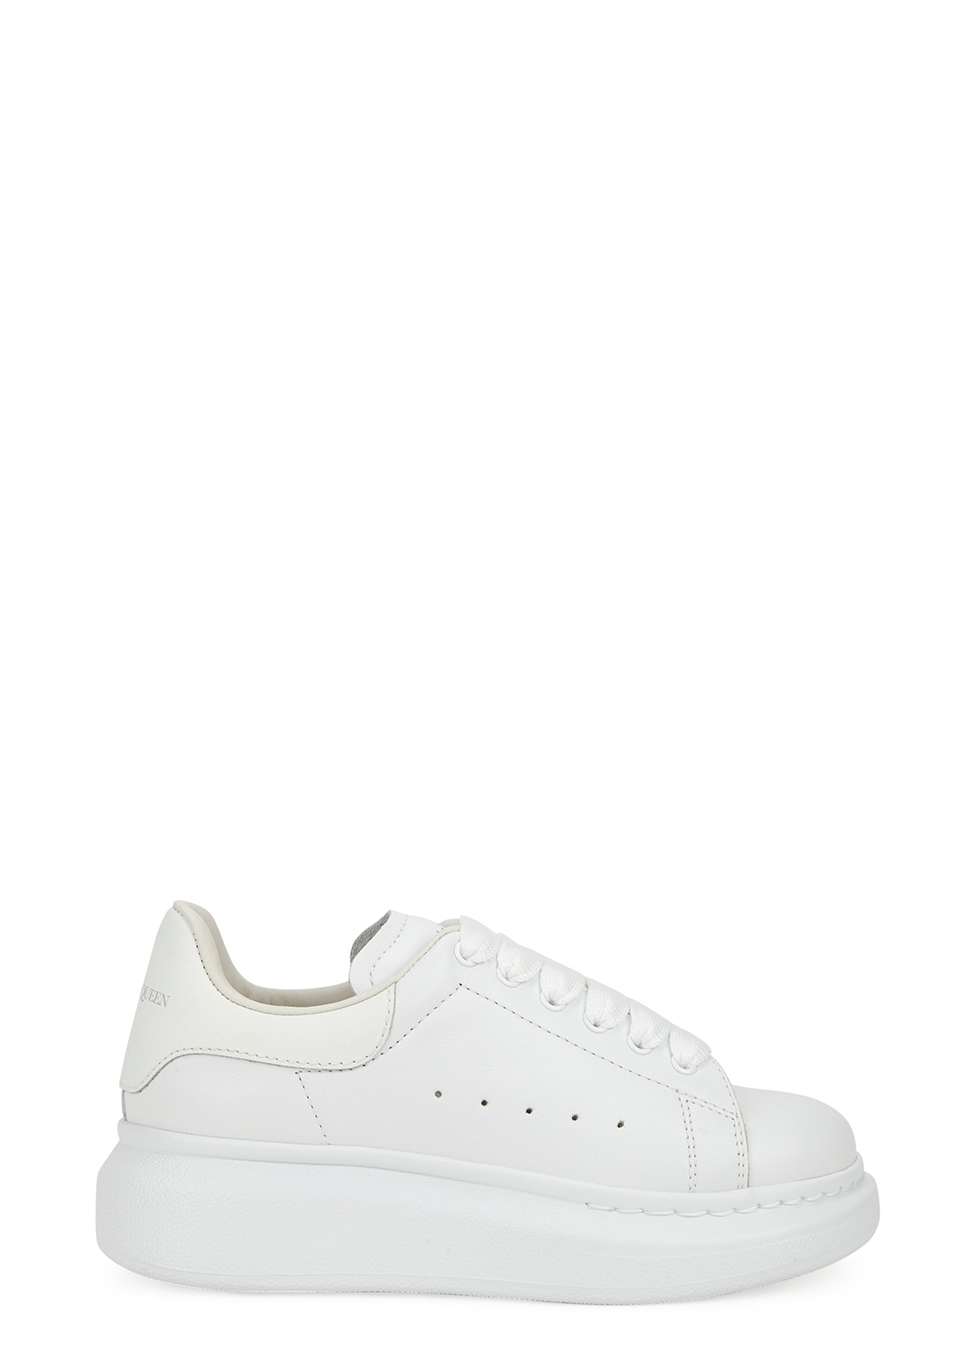 Larry white glow-in-the-dark leather sneakers